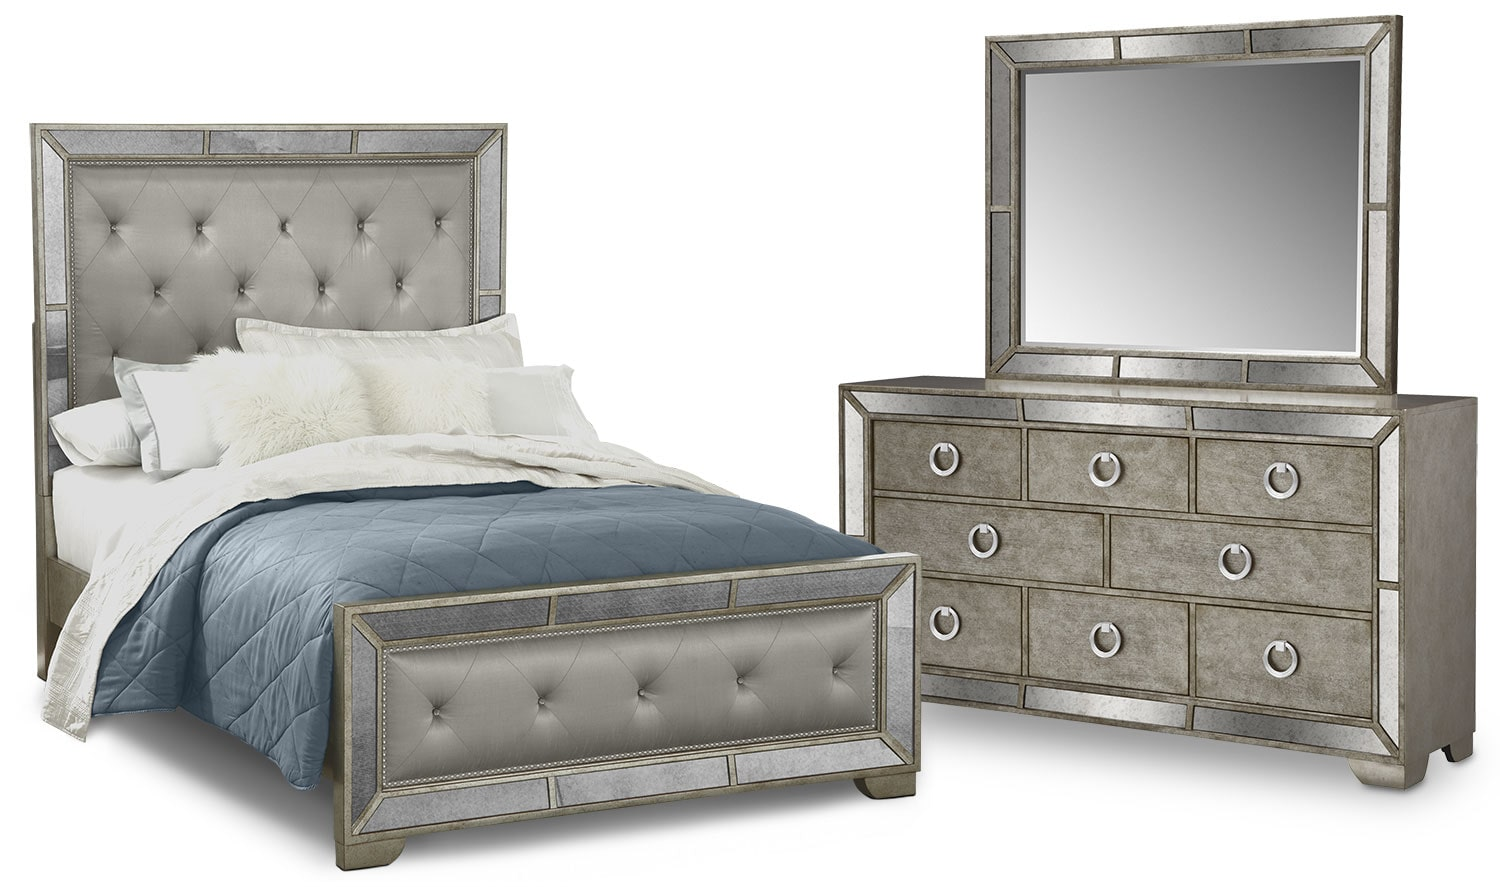 New Upholstered Bedroom Set Ideas